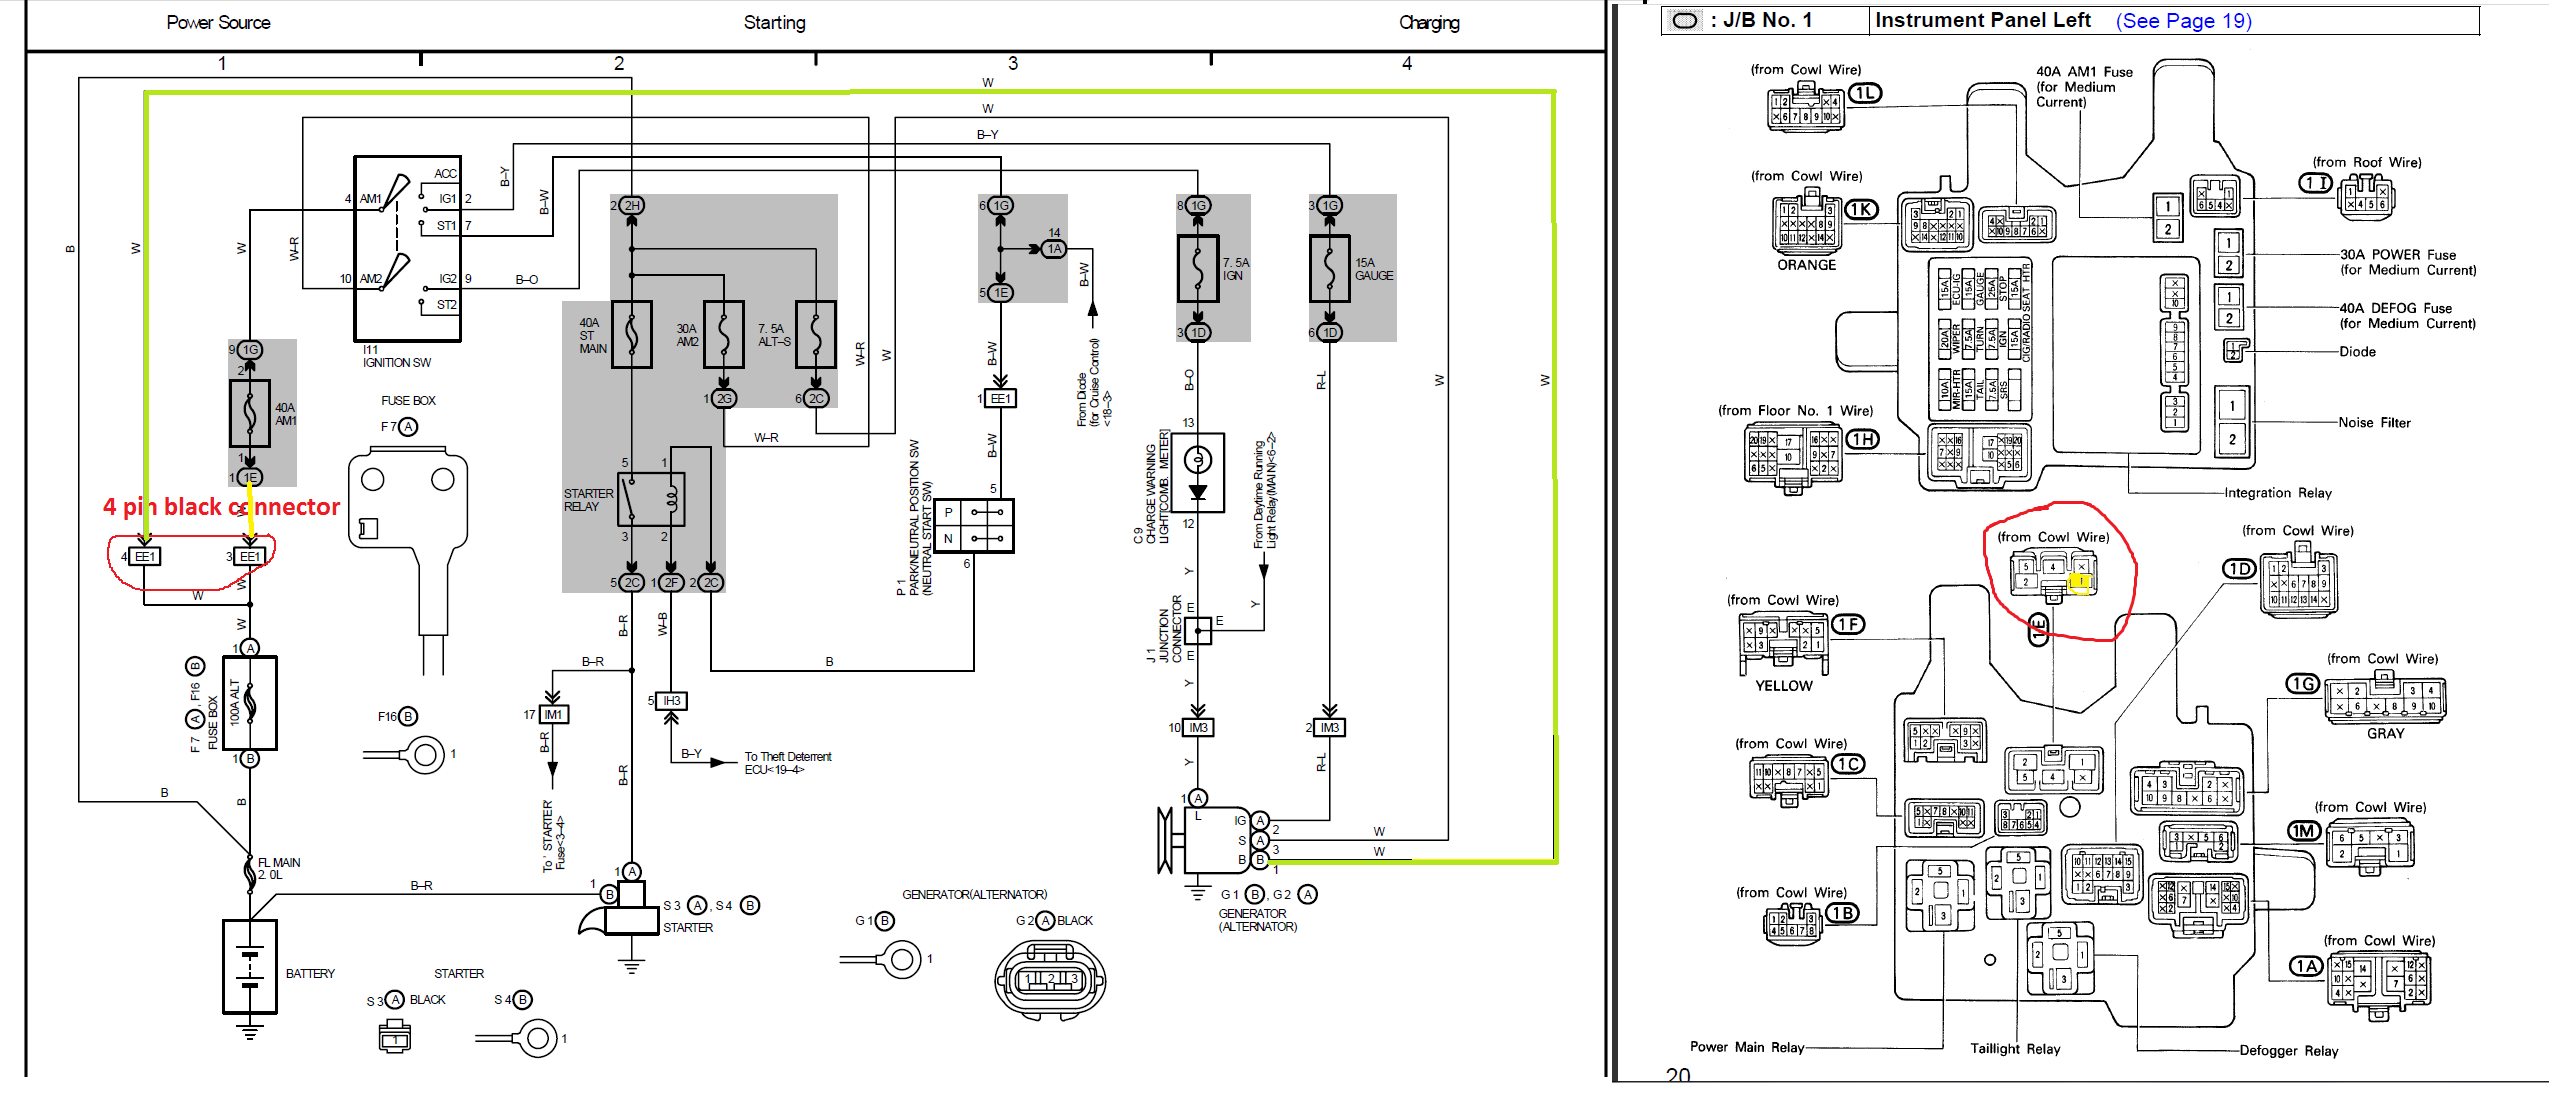 1993 lexus gs300 relay diagram